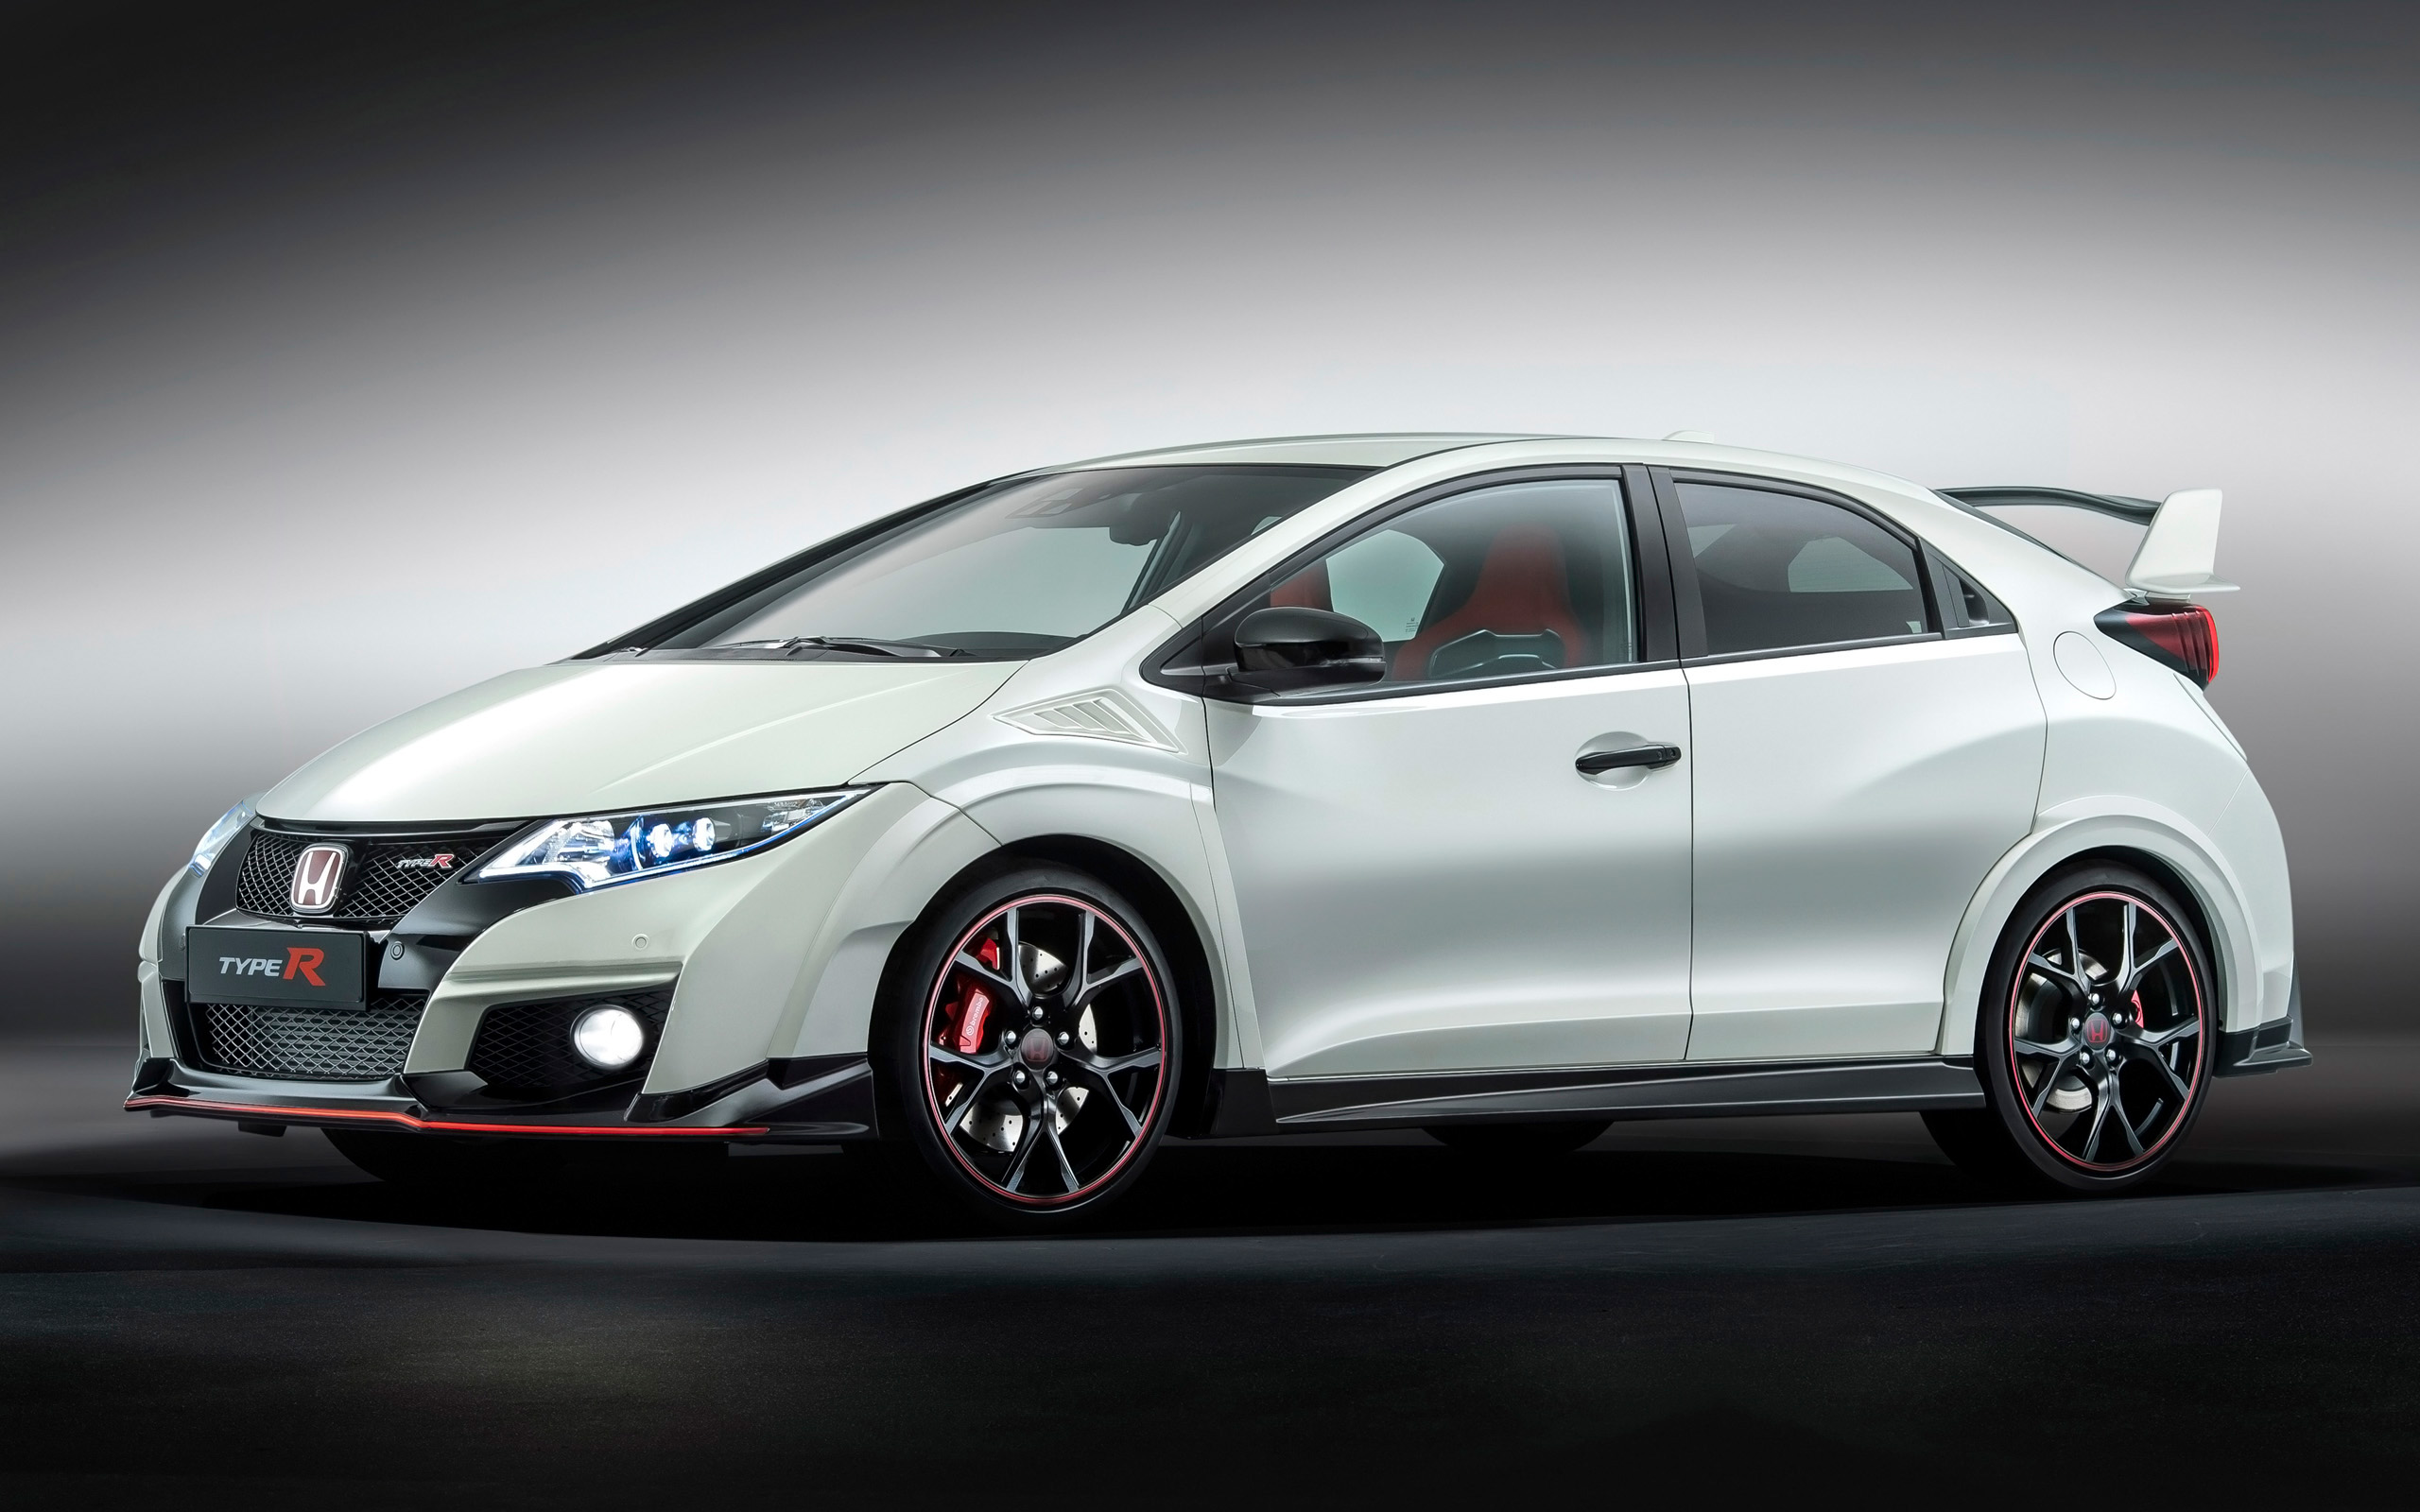 2015 Honda Civic Type R Wallpaper | HD Car Wallpapers